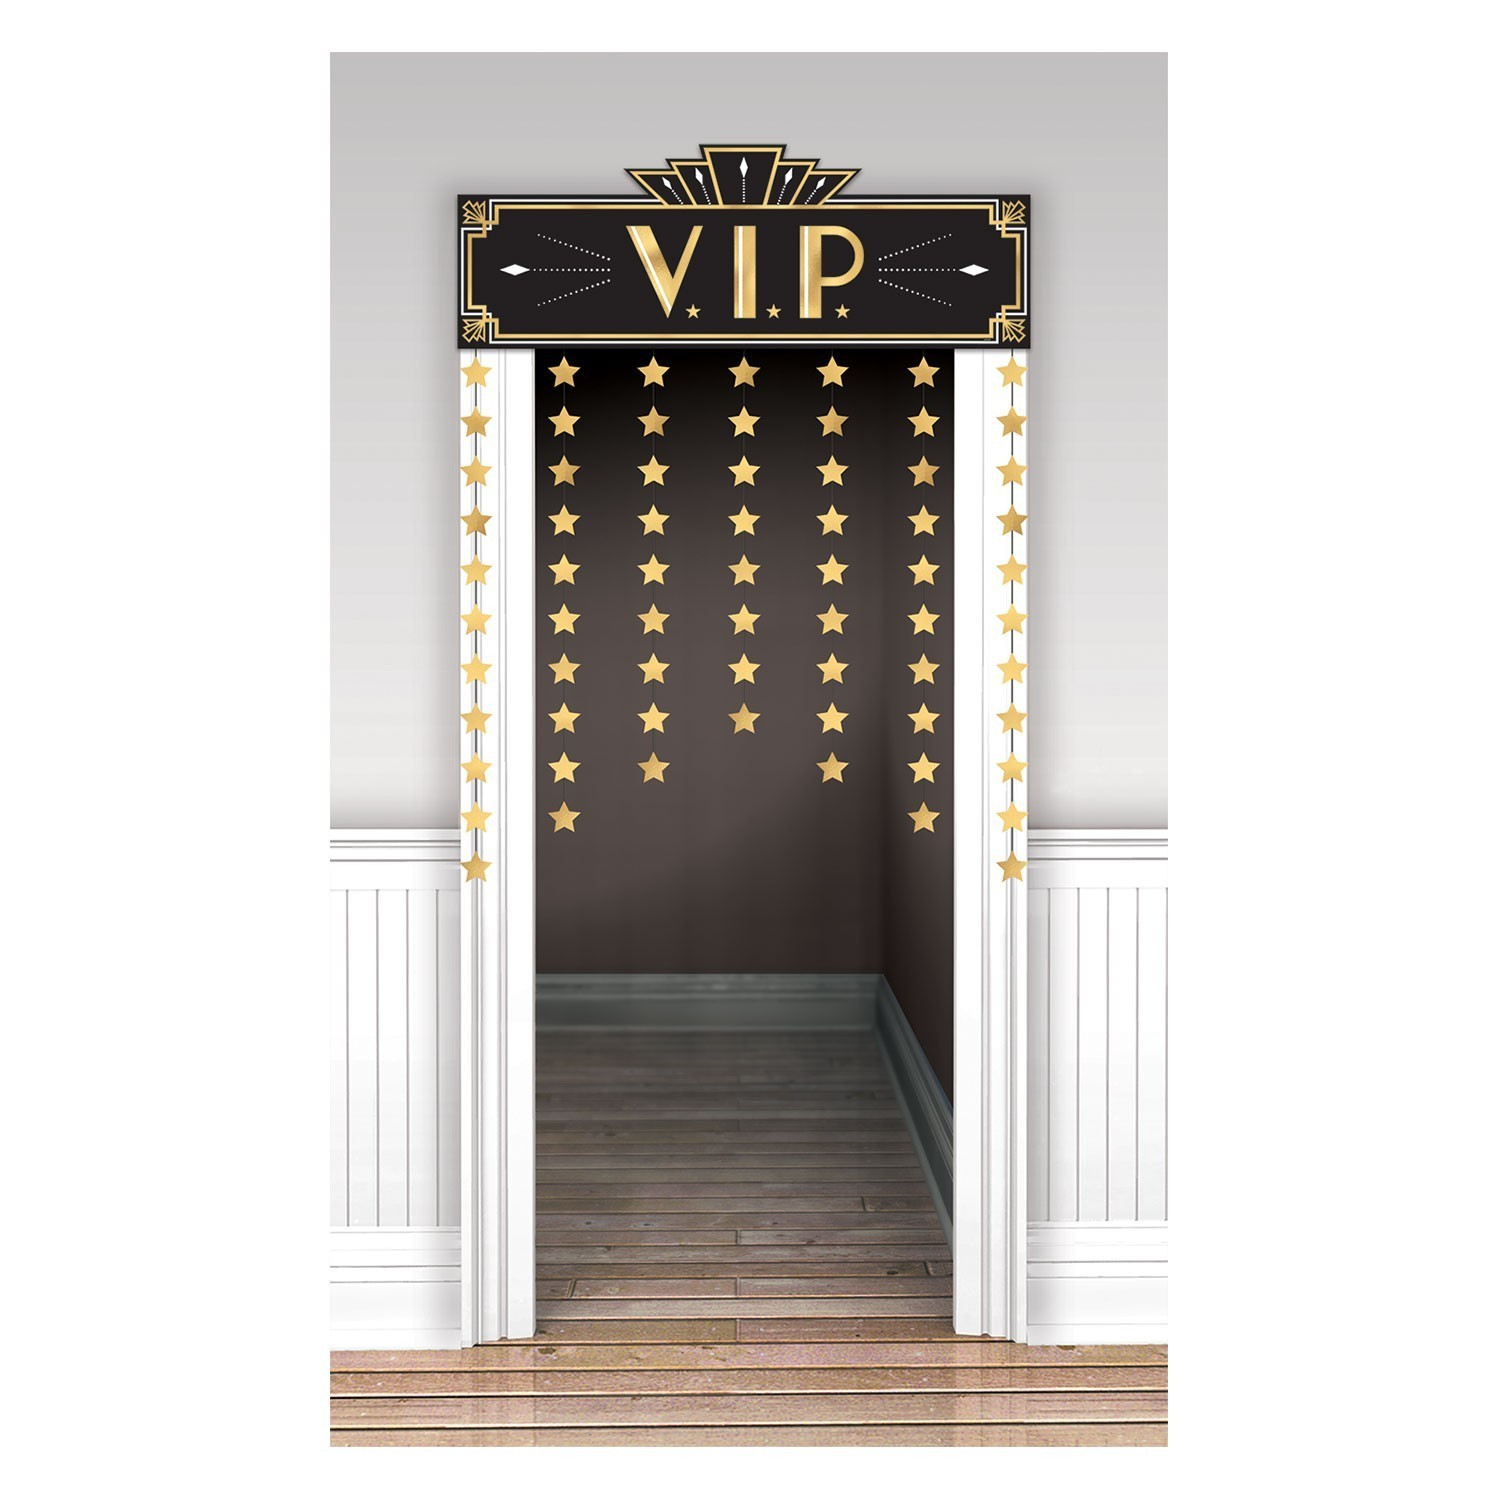 Decor-usa-perdea-decorativa-VIP